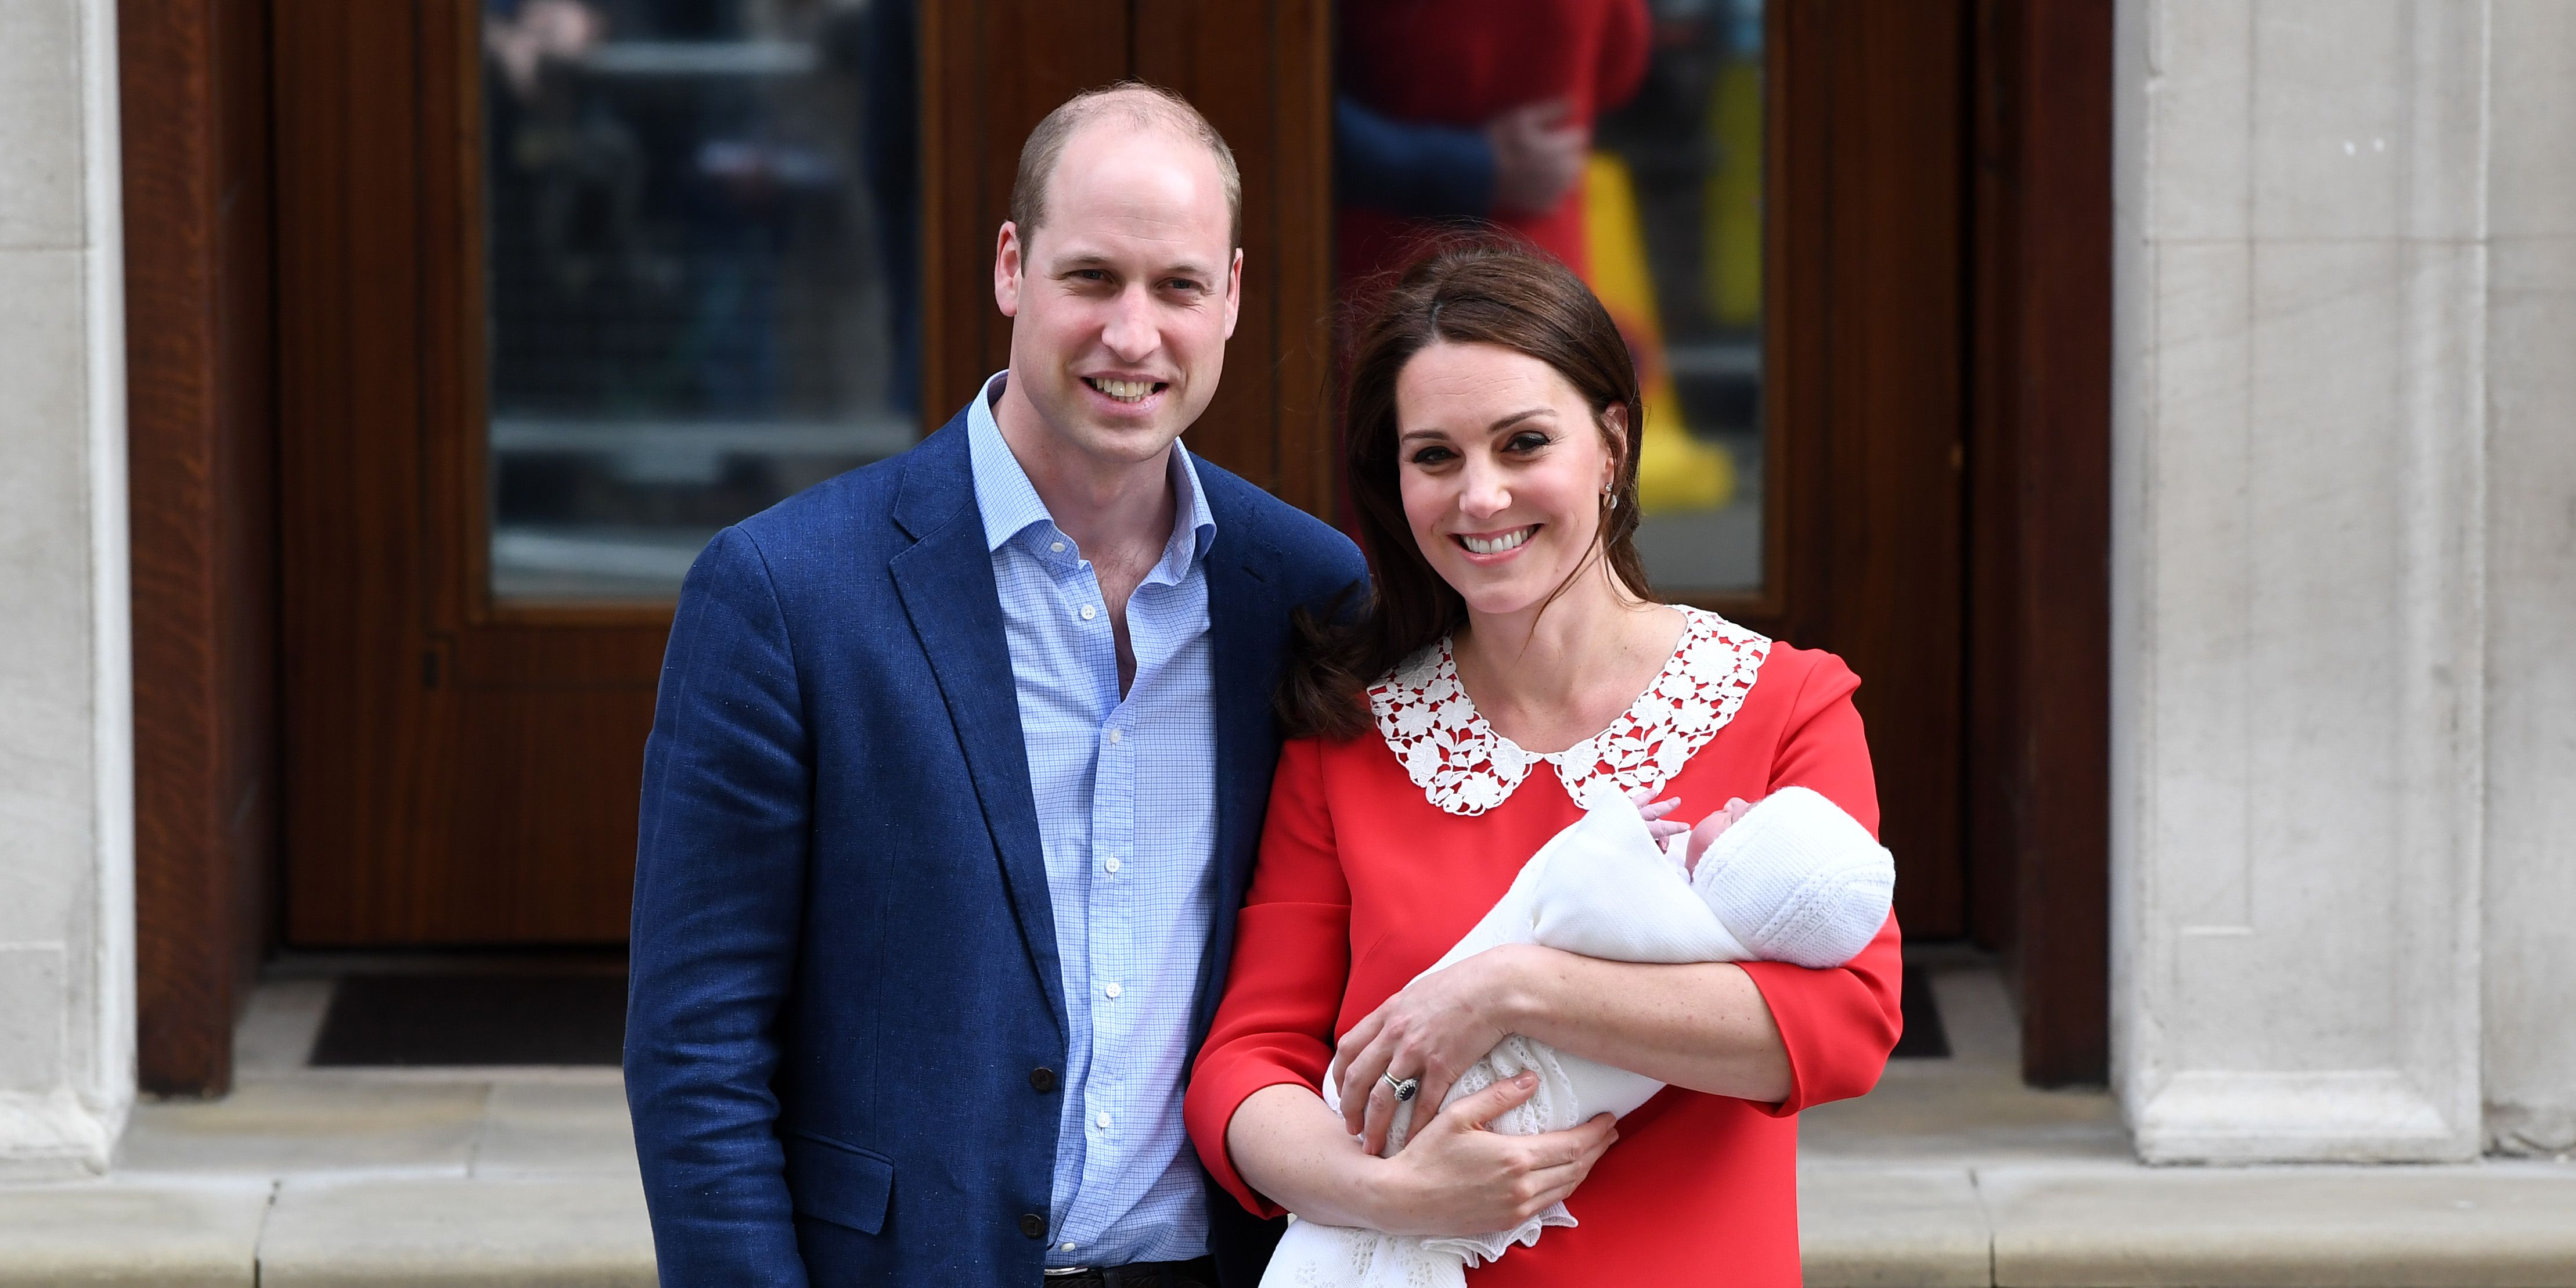 Prince Louis' christening gown has a fascinating story behind it